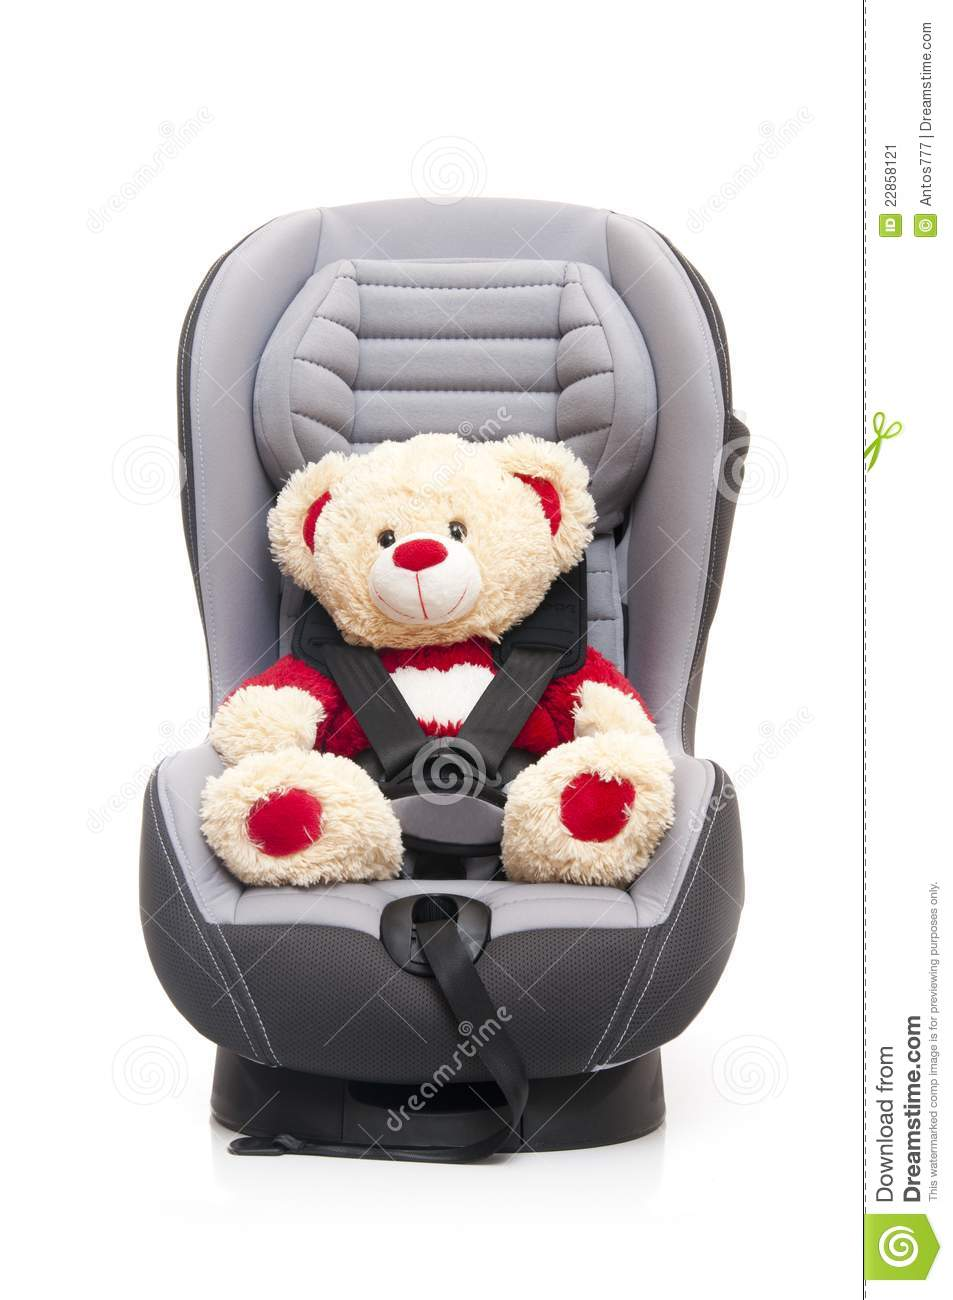 teddy bear sitting on child 39 s car seat stock image image 22858121. Black Bedroom Furniture Sets. Home Design Ideas